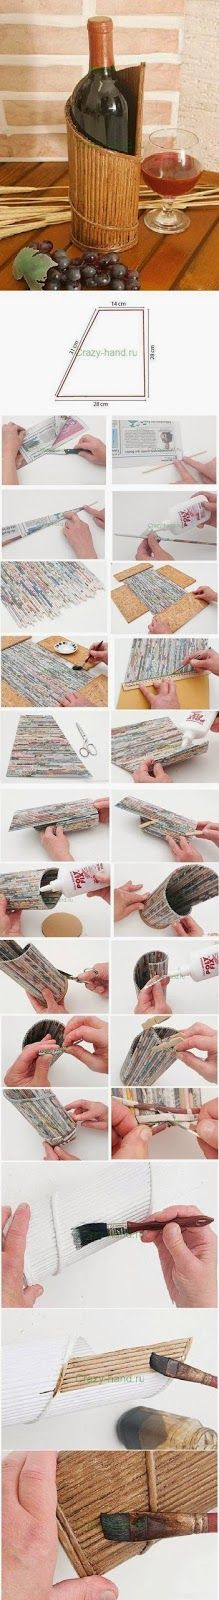 Best DIY Ideas: Make a Wine Stand From Newspaper